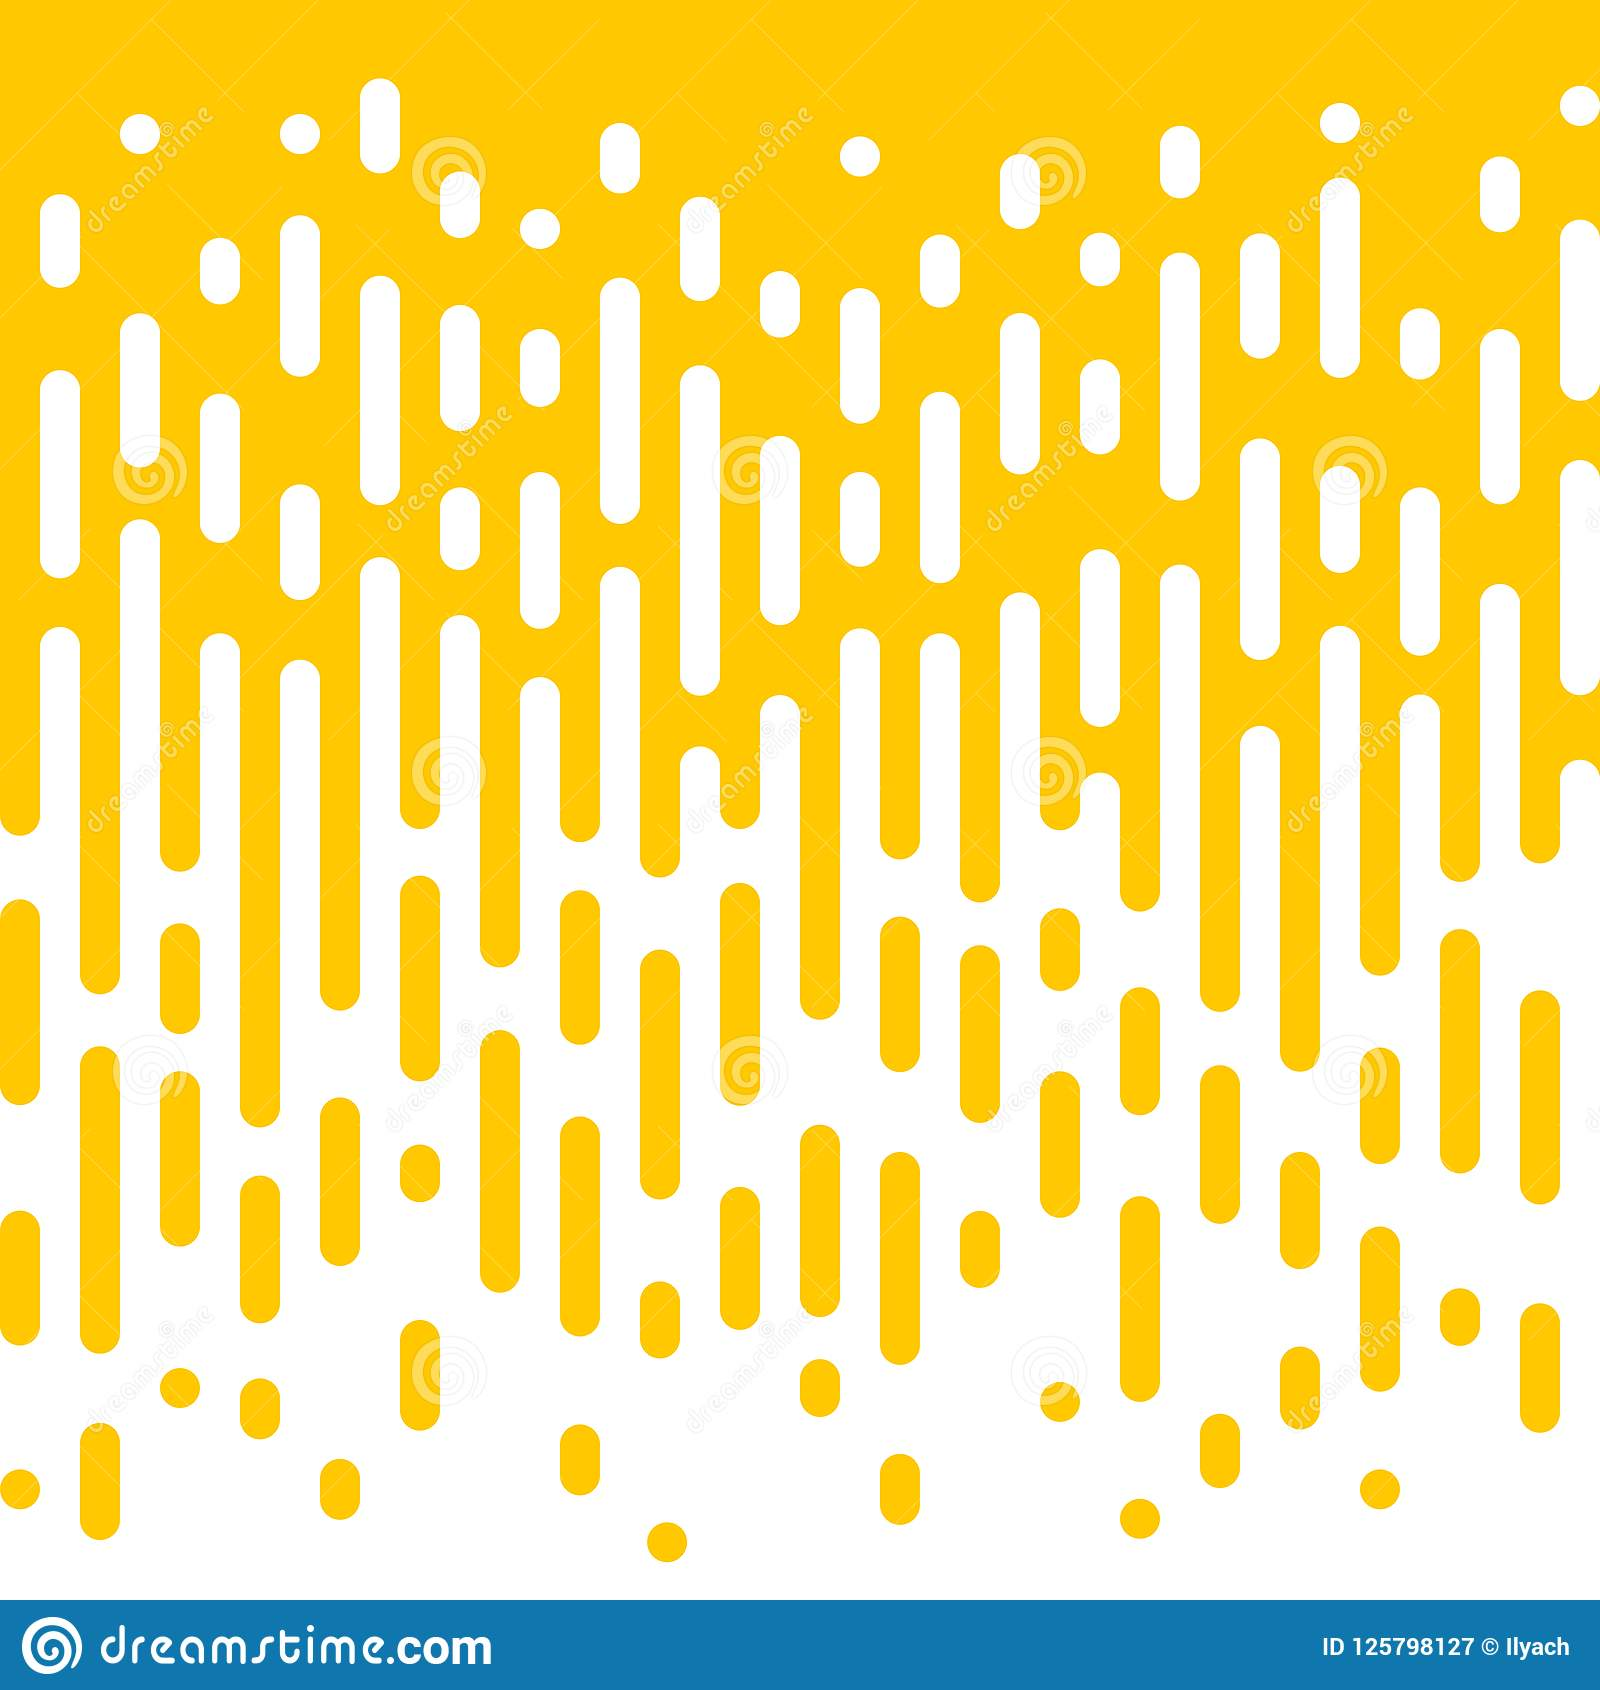 Abstract yellow line flow halftone background